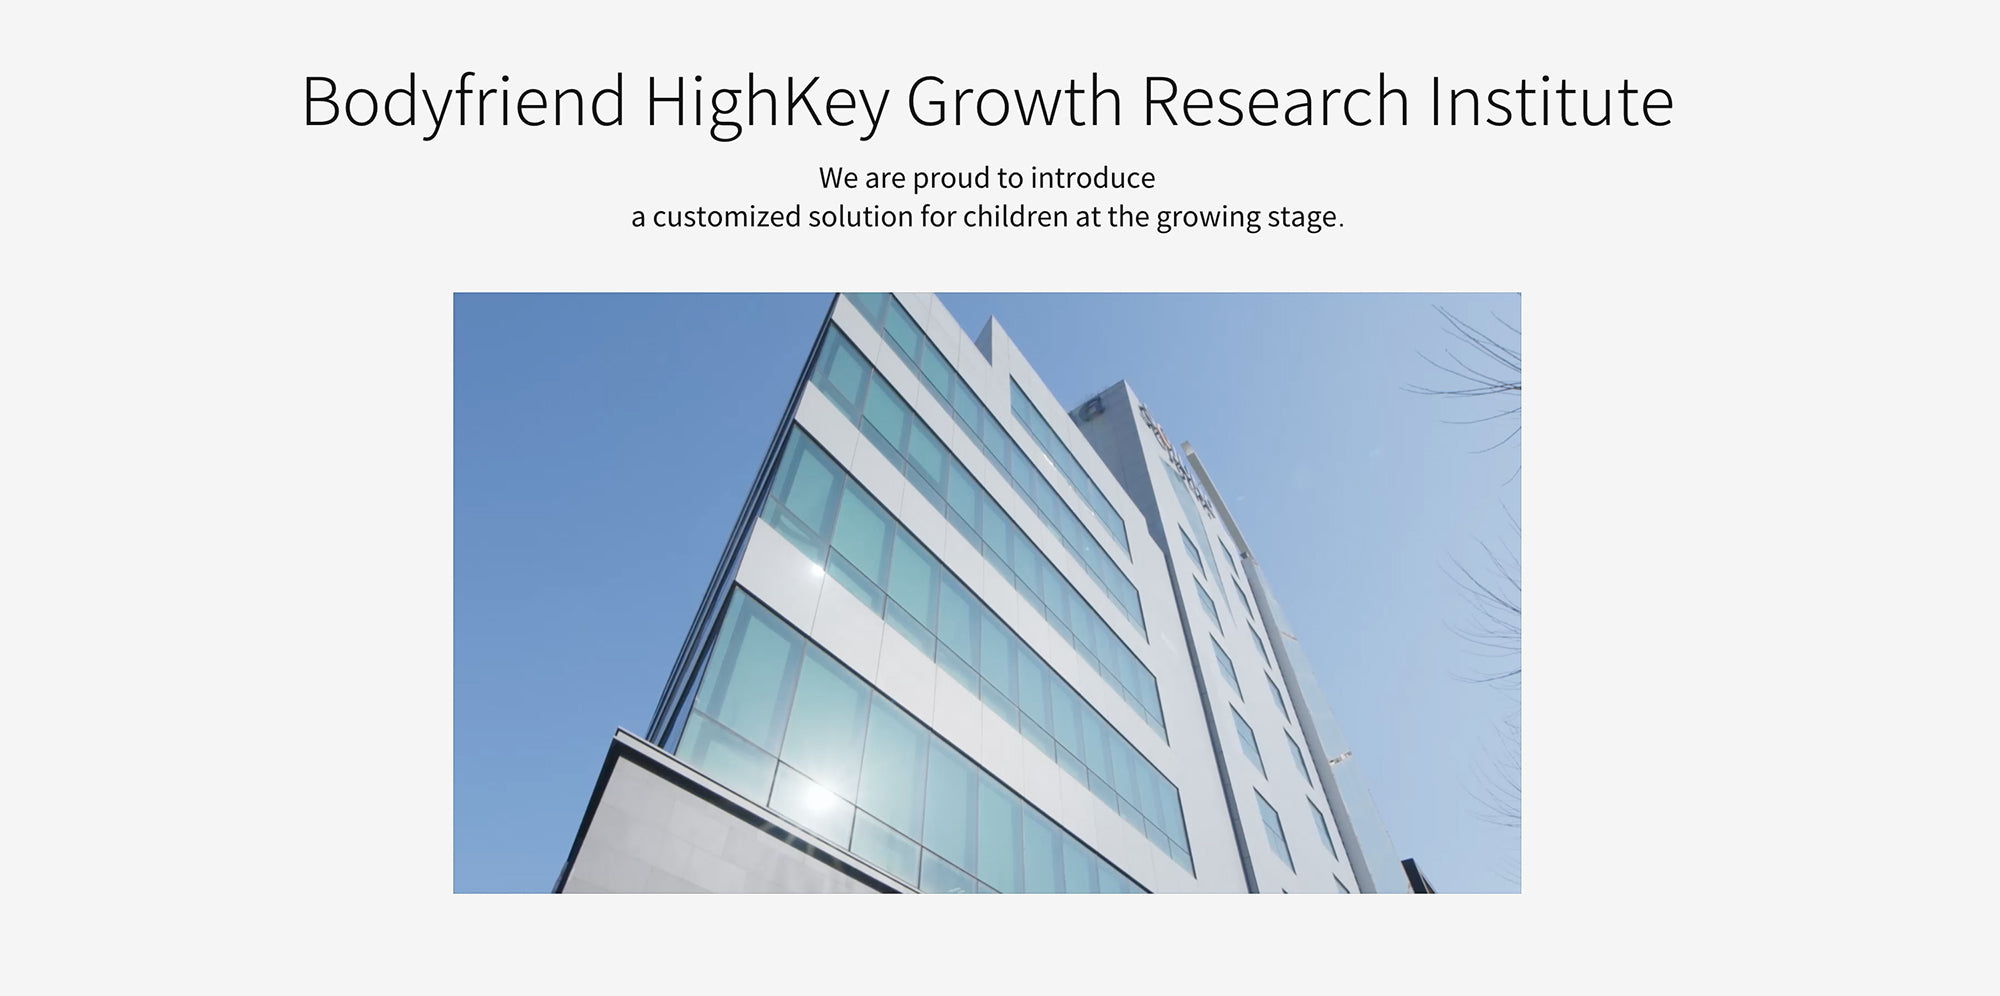 Bodyfriend HighKey Growth Research Institute